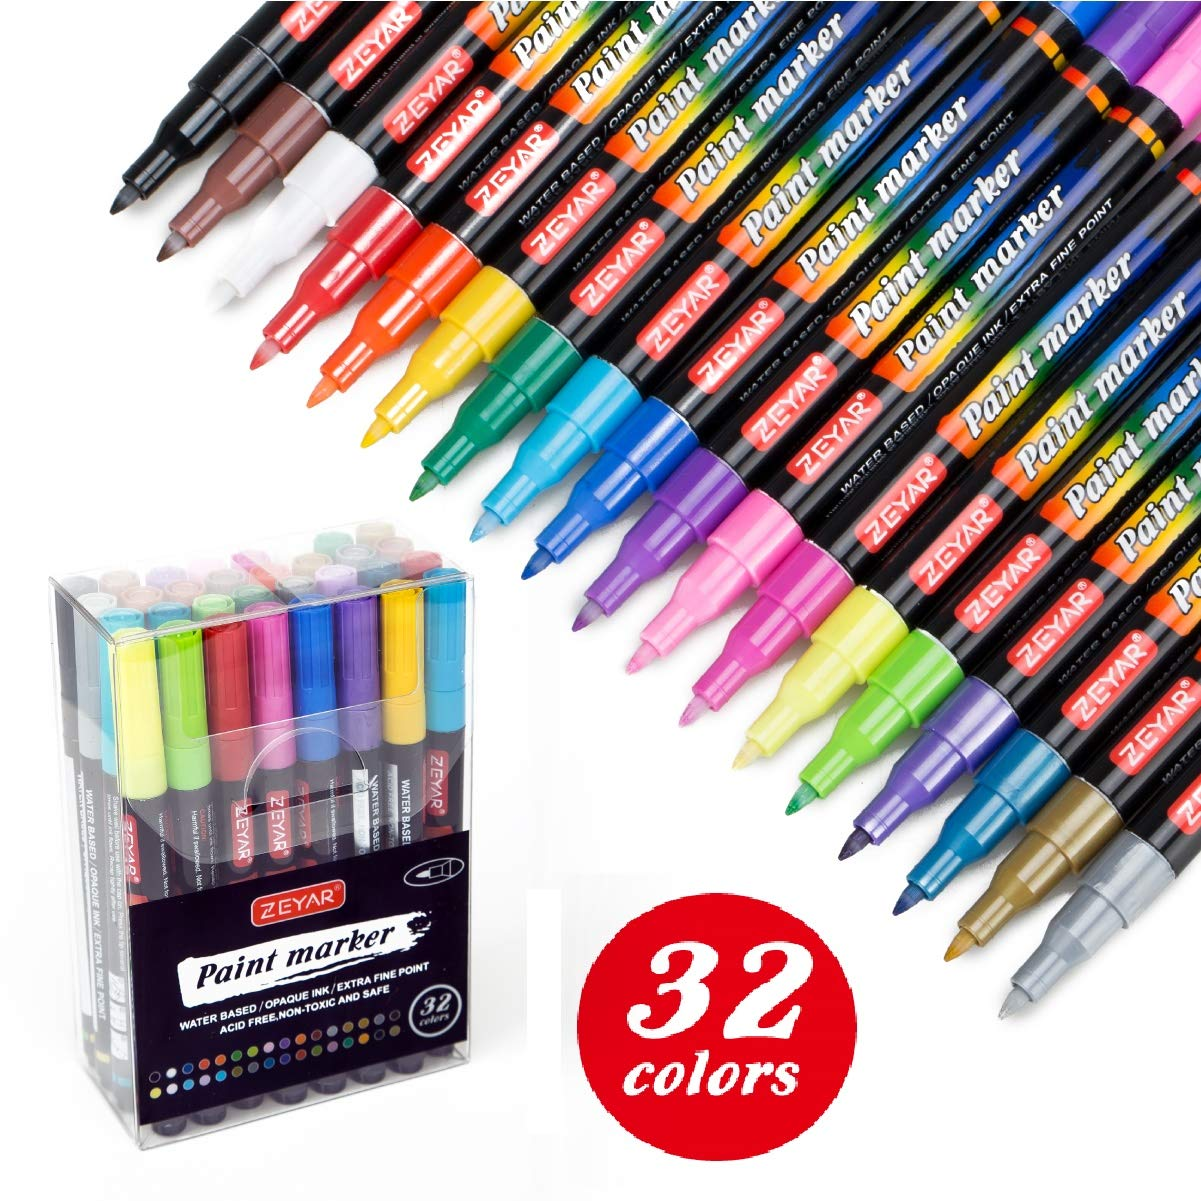 ZEYAR Acrylic Paint Pens, Water based, Extra Fine Point, 32 vibrant colors, Opaque Ink, Paint Markers for Glass, Rock, Paper, Ceramic, Plastic and Non porous surfaces by ZEYAR